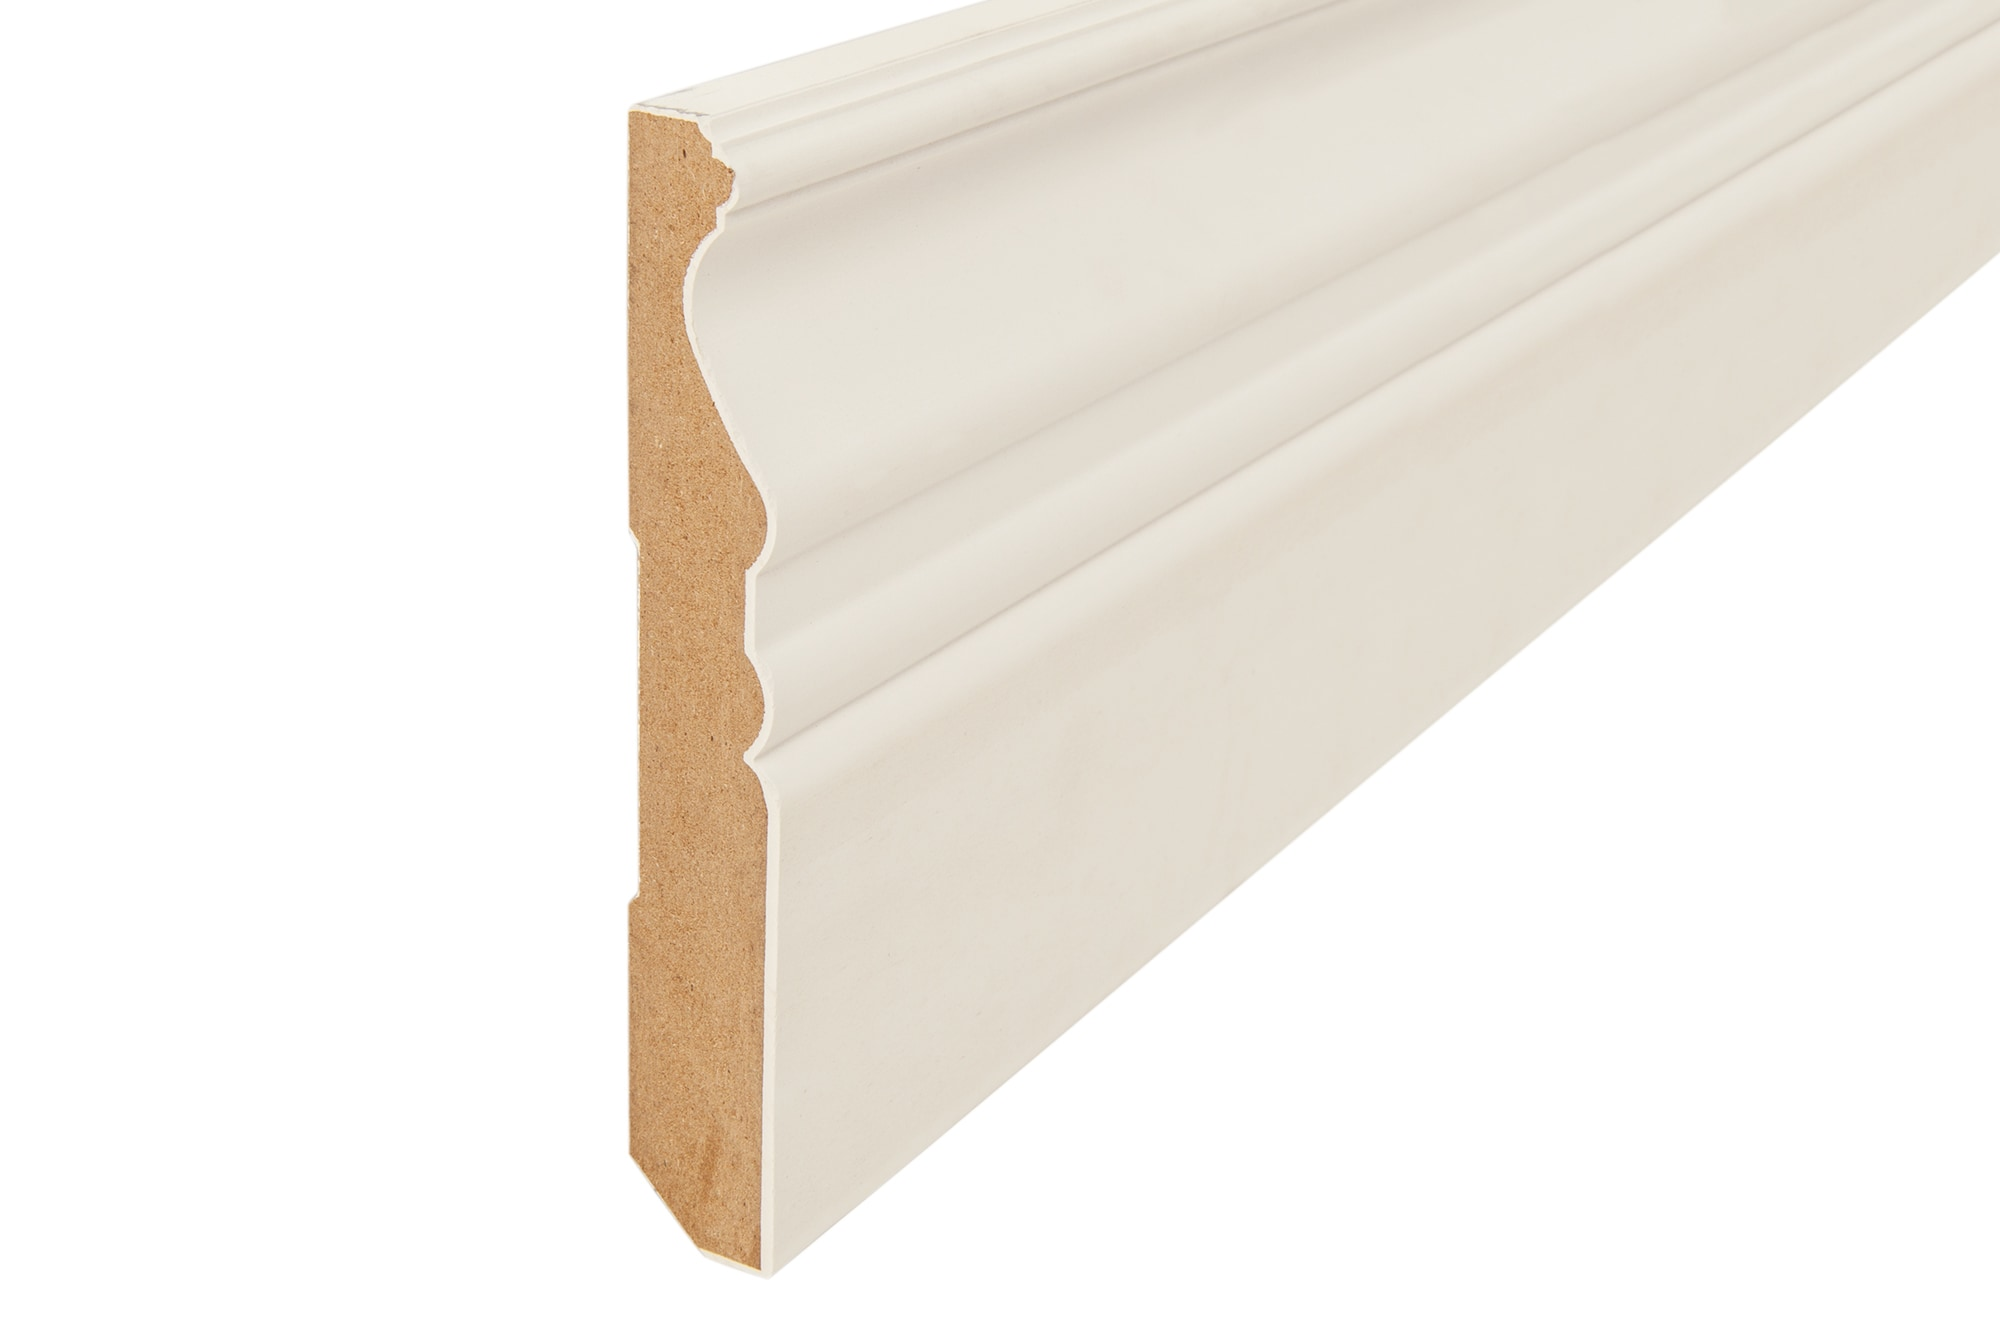 How to cut base molding around wall vent - Gesso Coated Architectural Baseboards 16 Baseboard 5 8 X 5 1